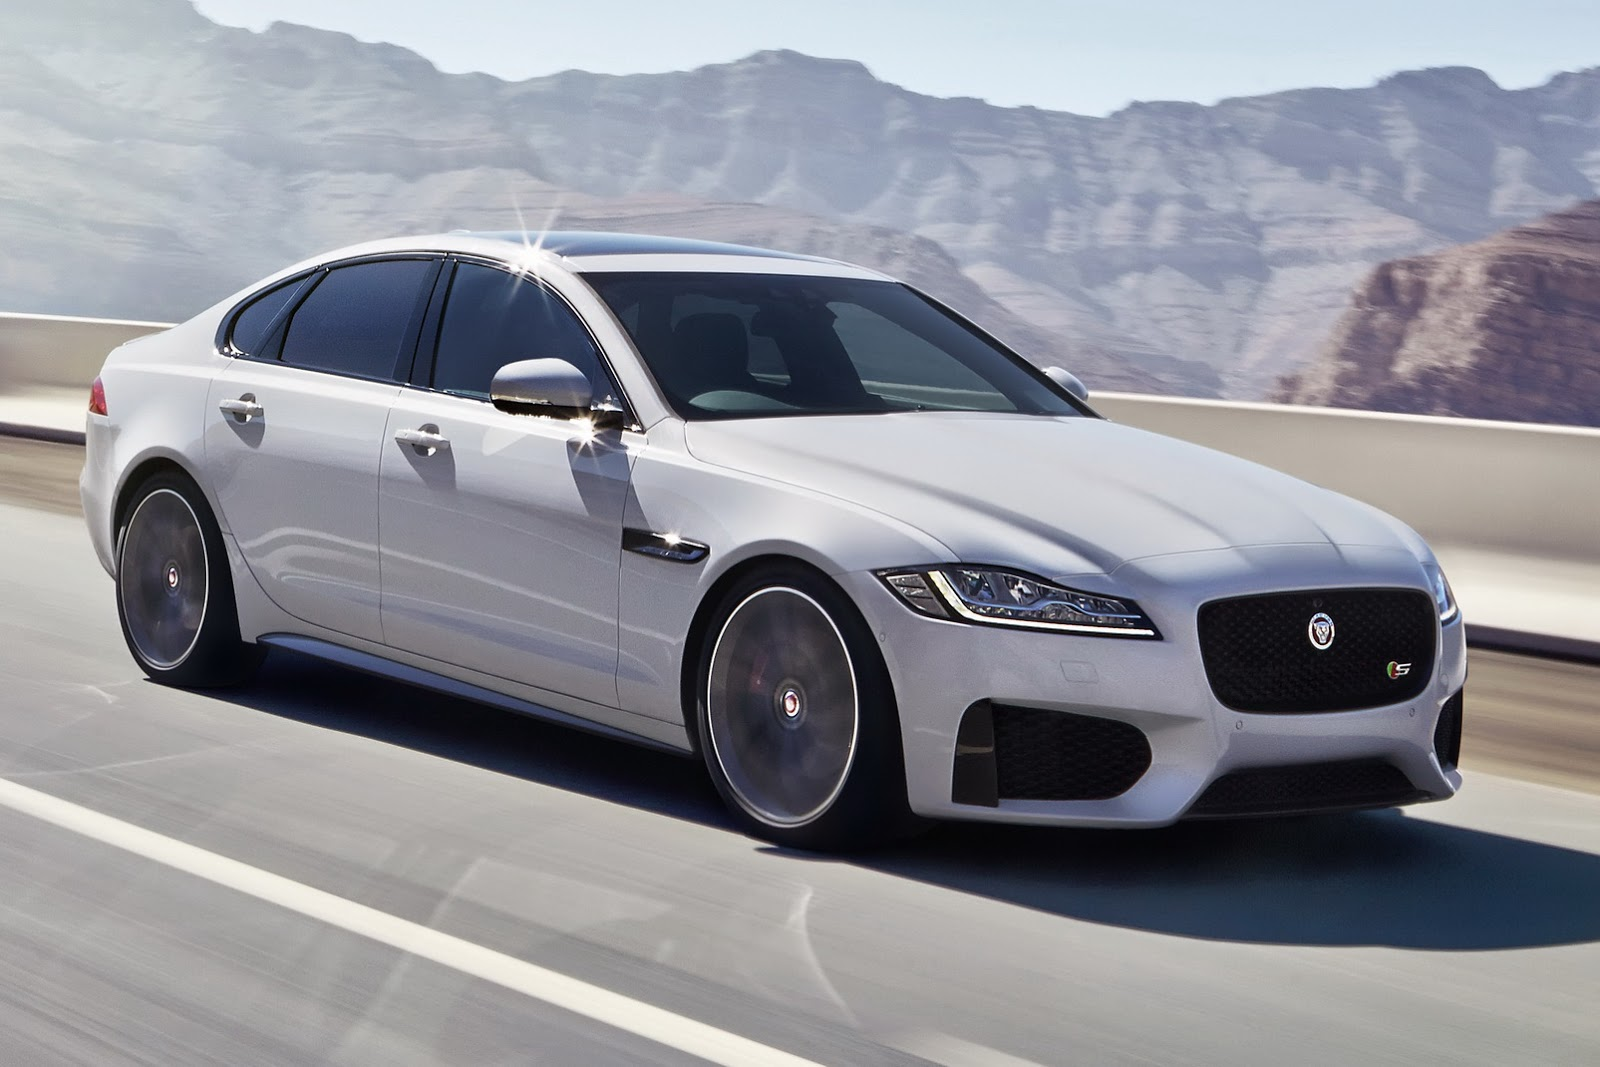 Jaguar S 2016 Xf May Be All New But It Looks Overly Familiar Carscoops